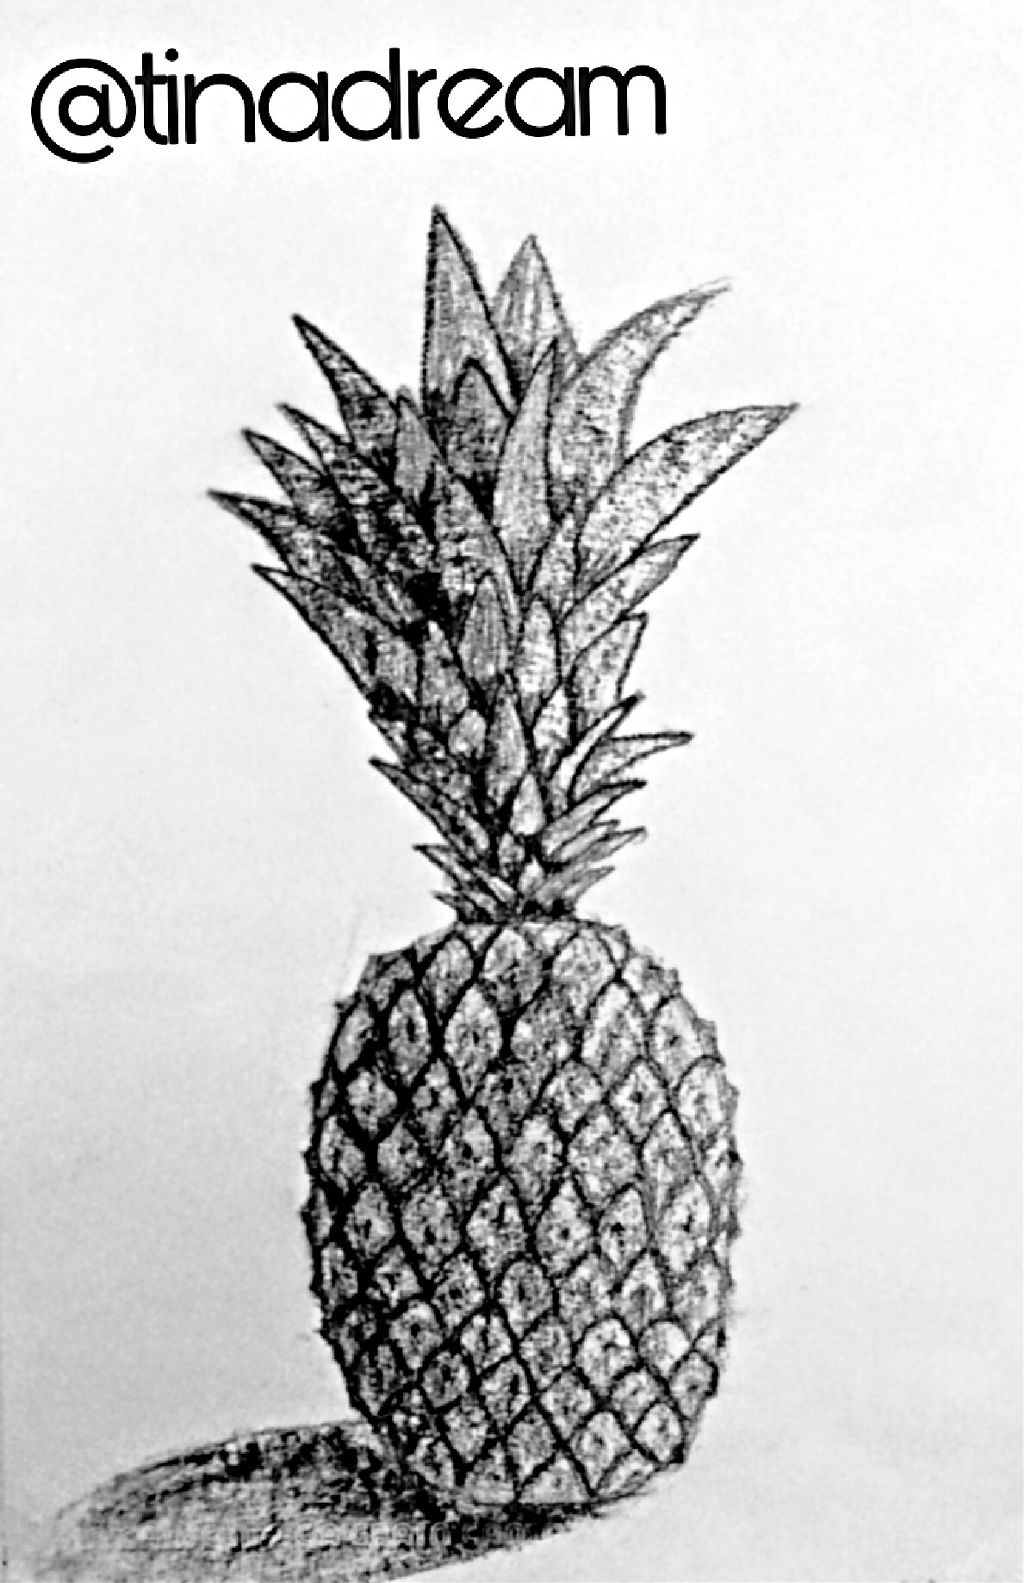 Ananas Dessin Image By Tinadream